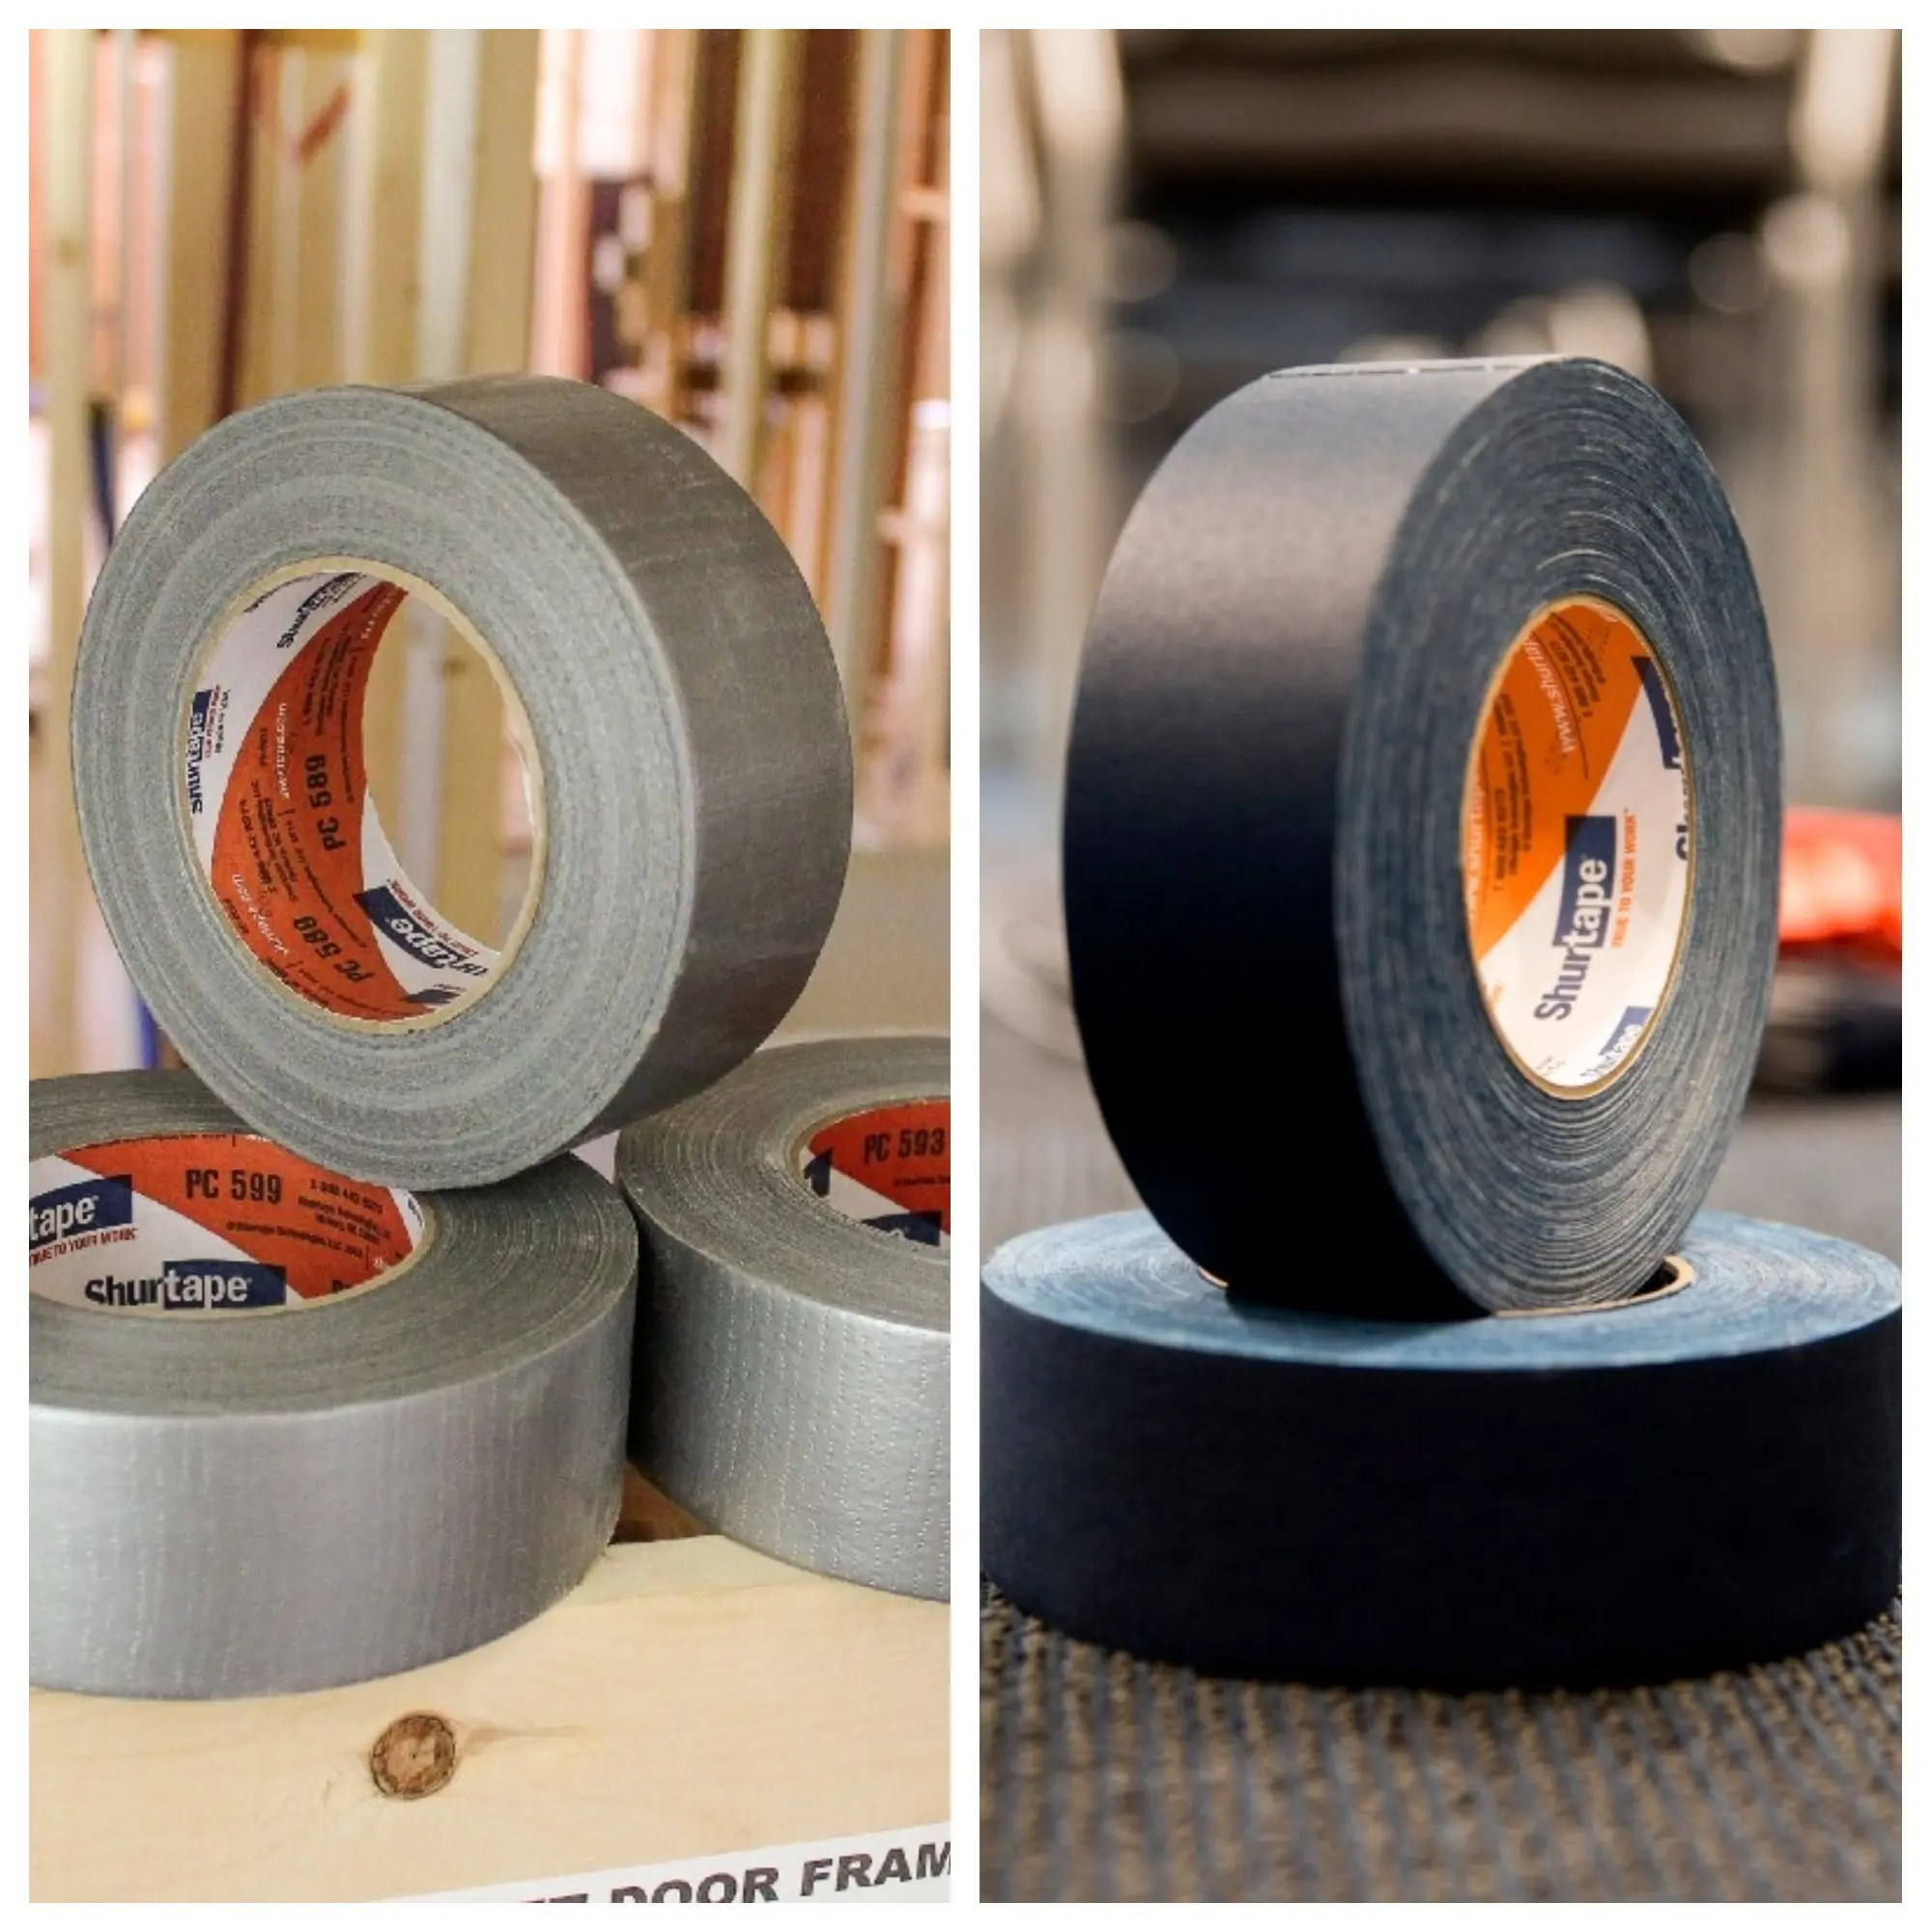 Difference between duct and gaffers tape